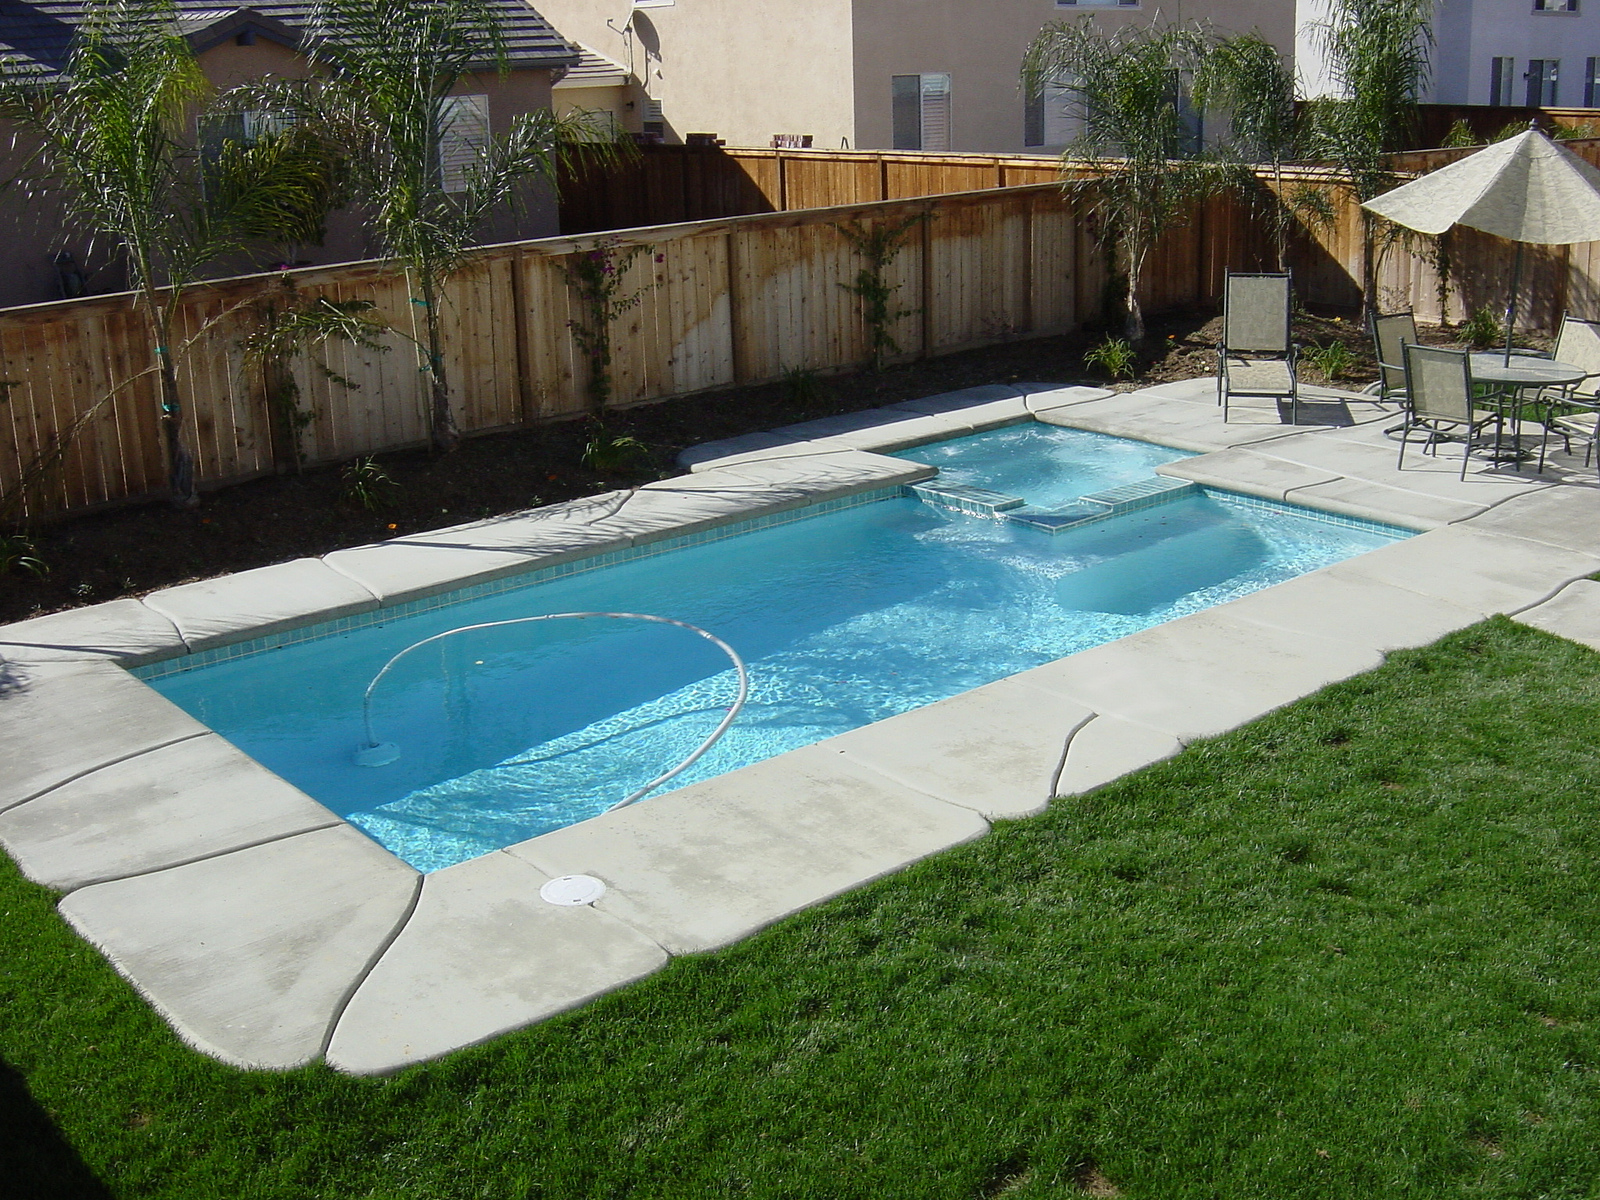 Rectangle Pool Designs That Will Give You Awesome Swimming ... on Rectangle Patio Ideas id=73282